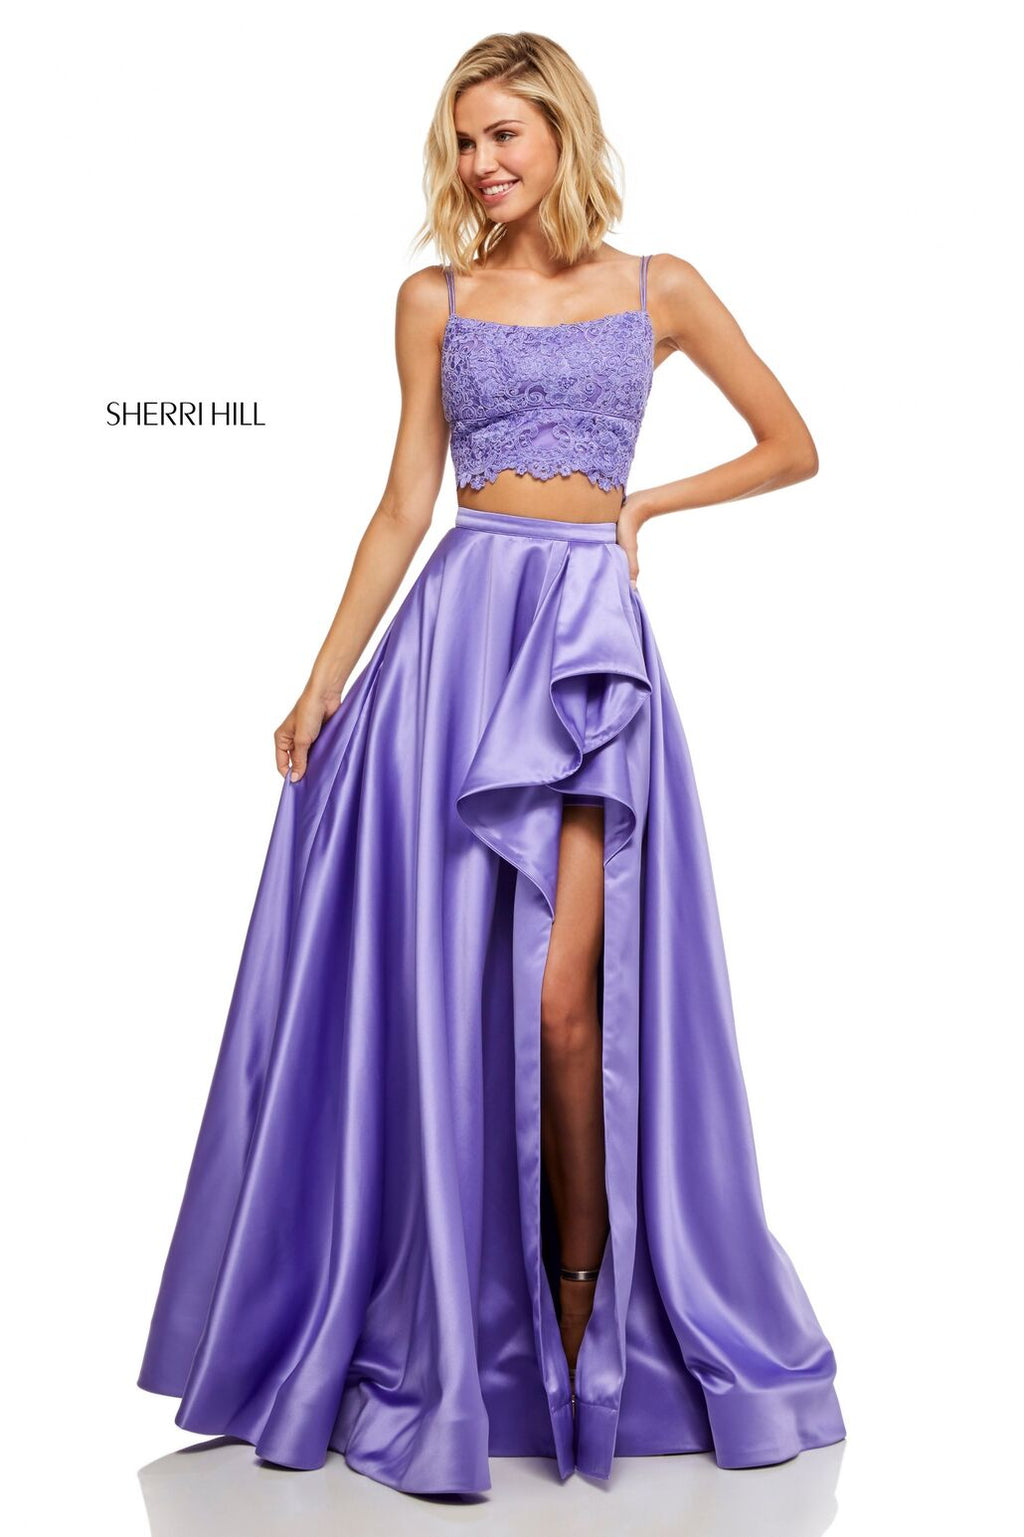 This Sherri Hill 52623 two-piece gown in lilac features a lace top and a satin skirt with a ruffle slit.